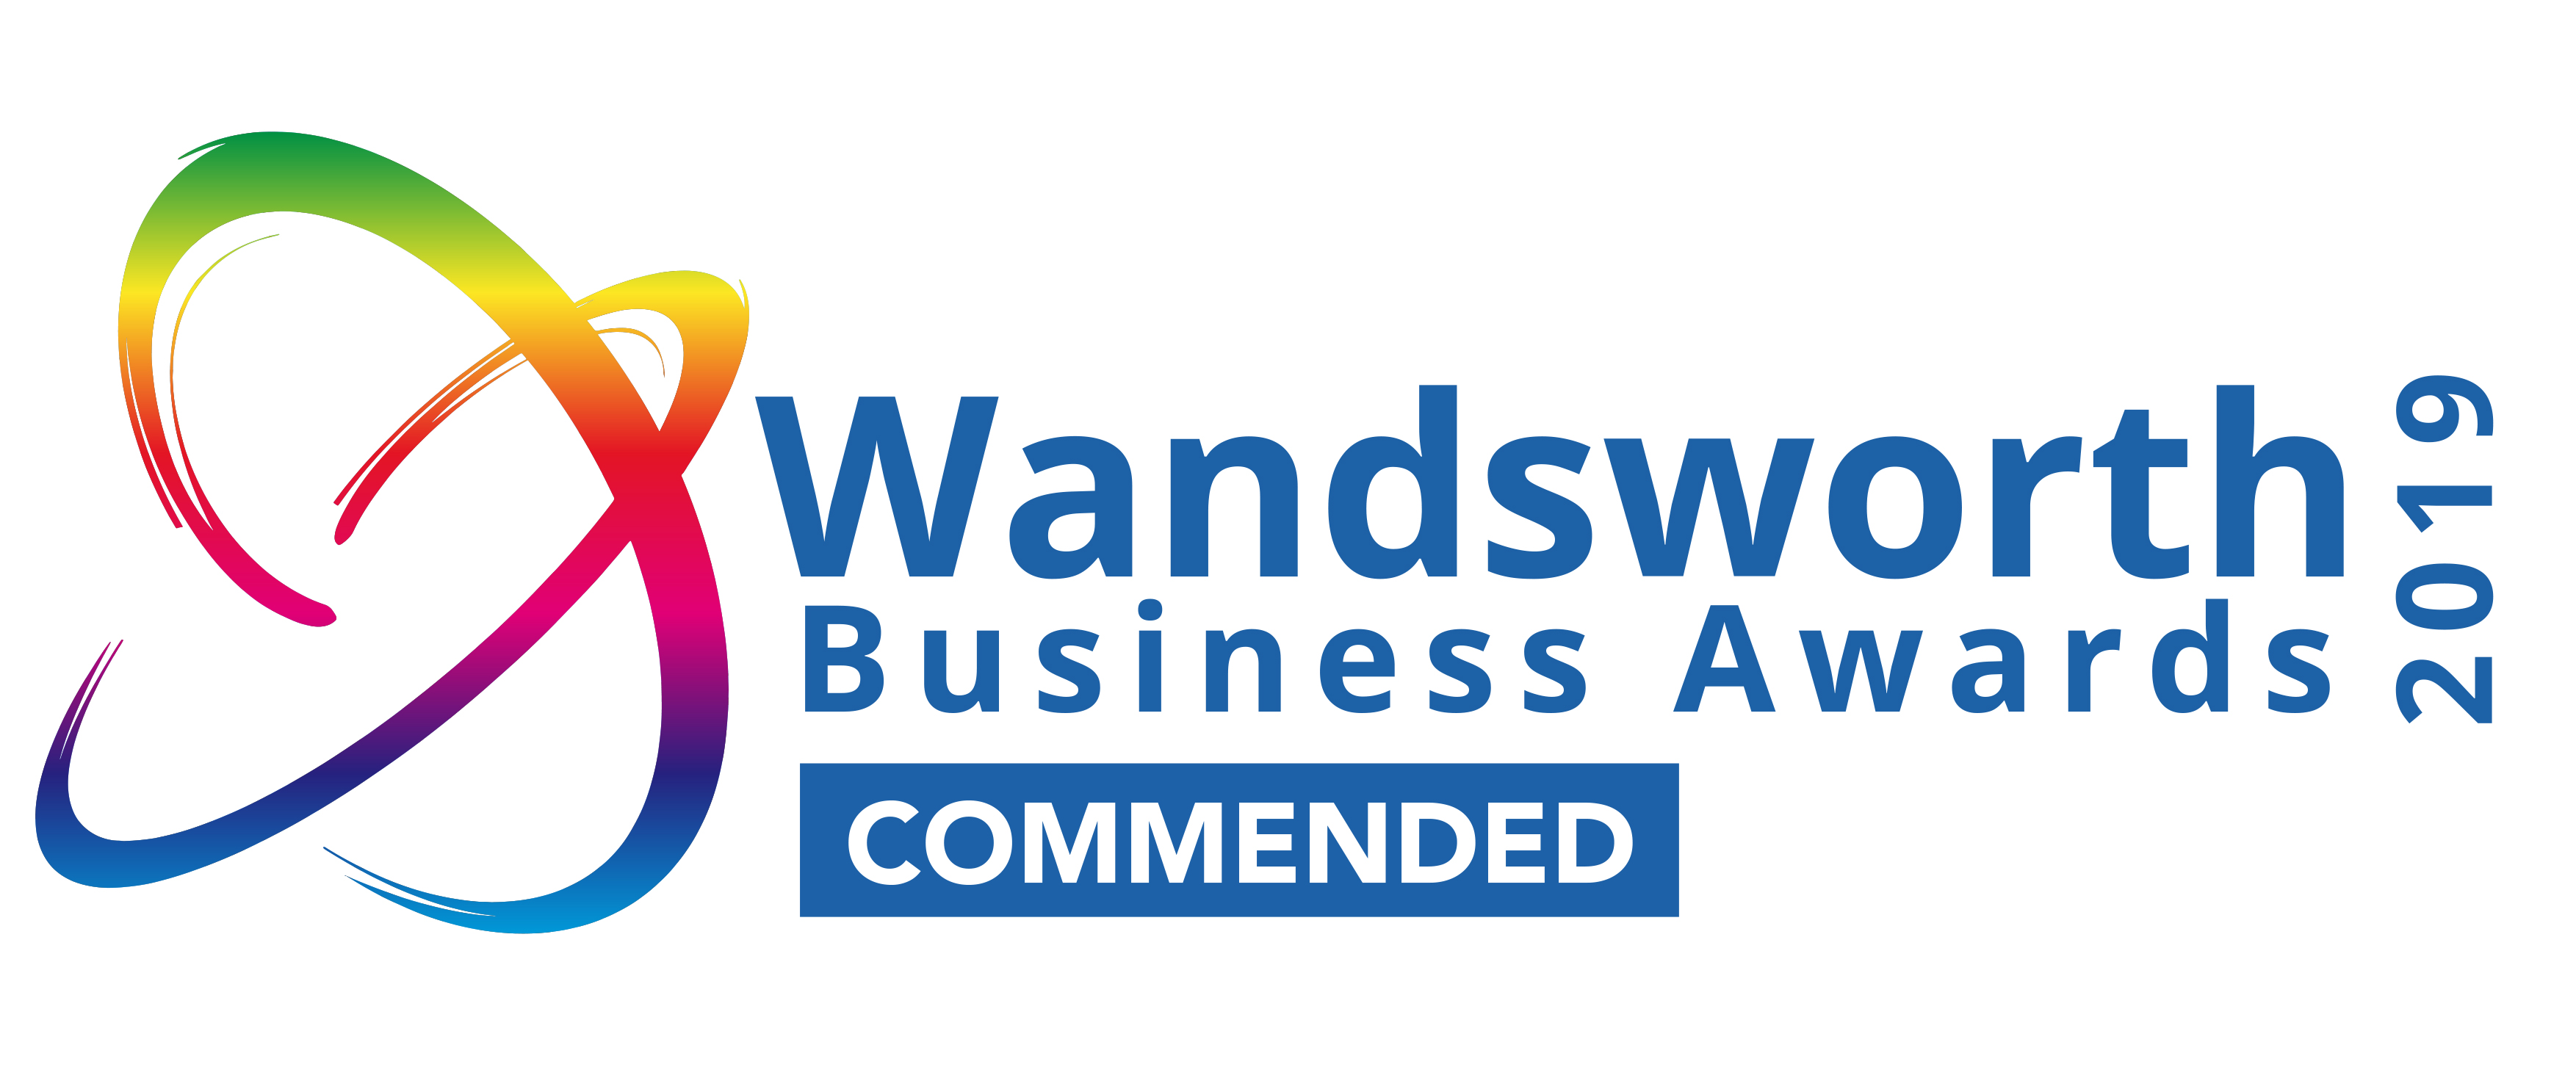 Share commended in Wandsworth Business Awards